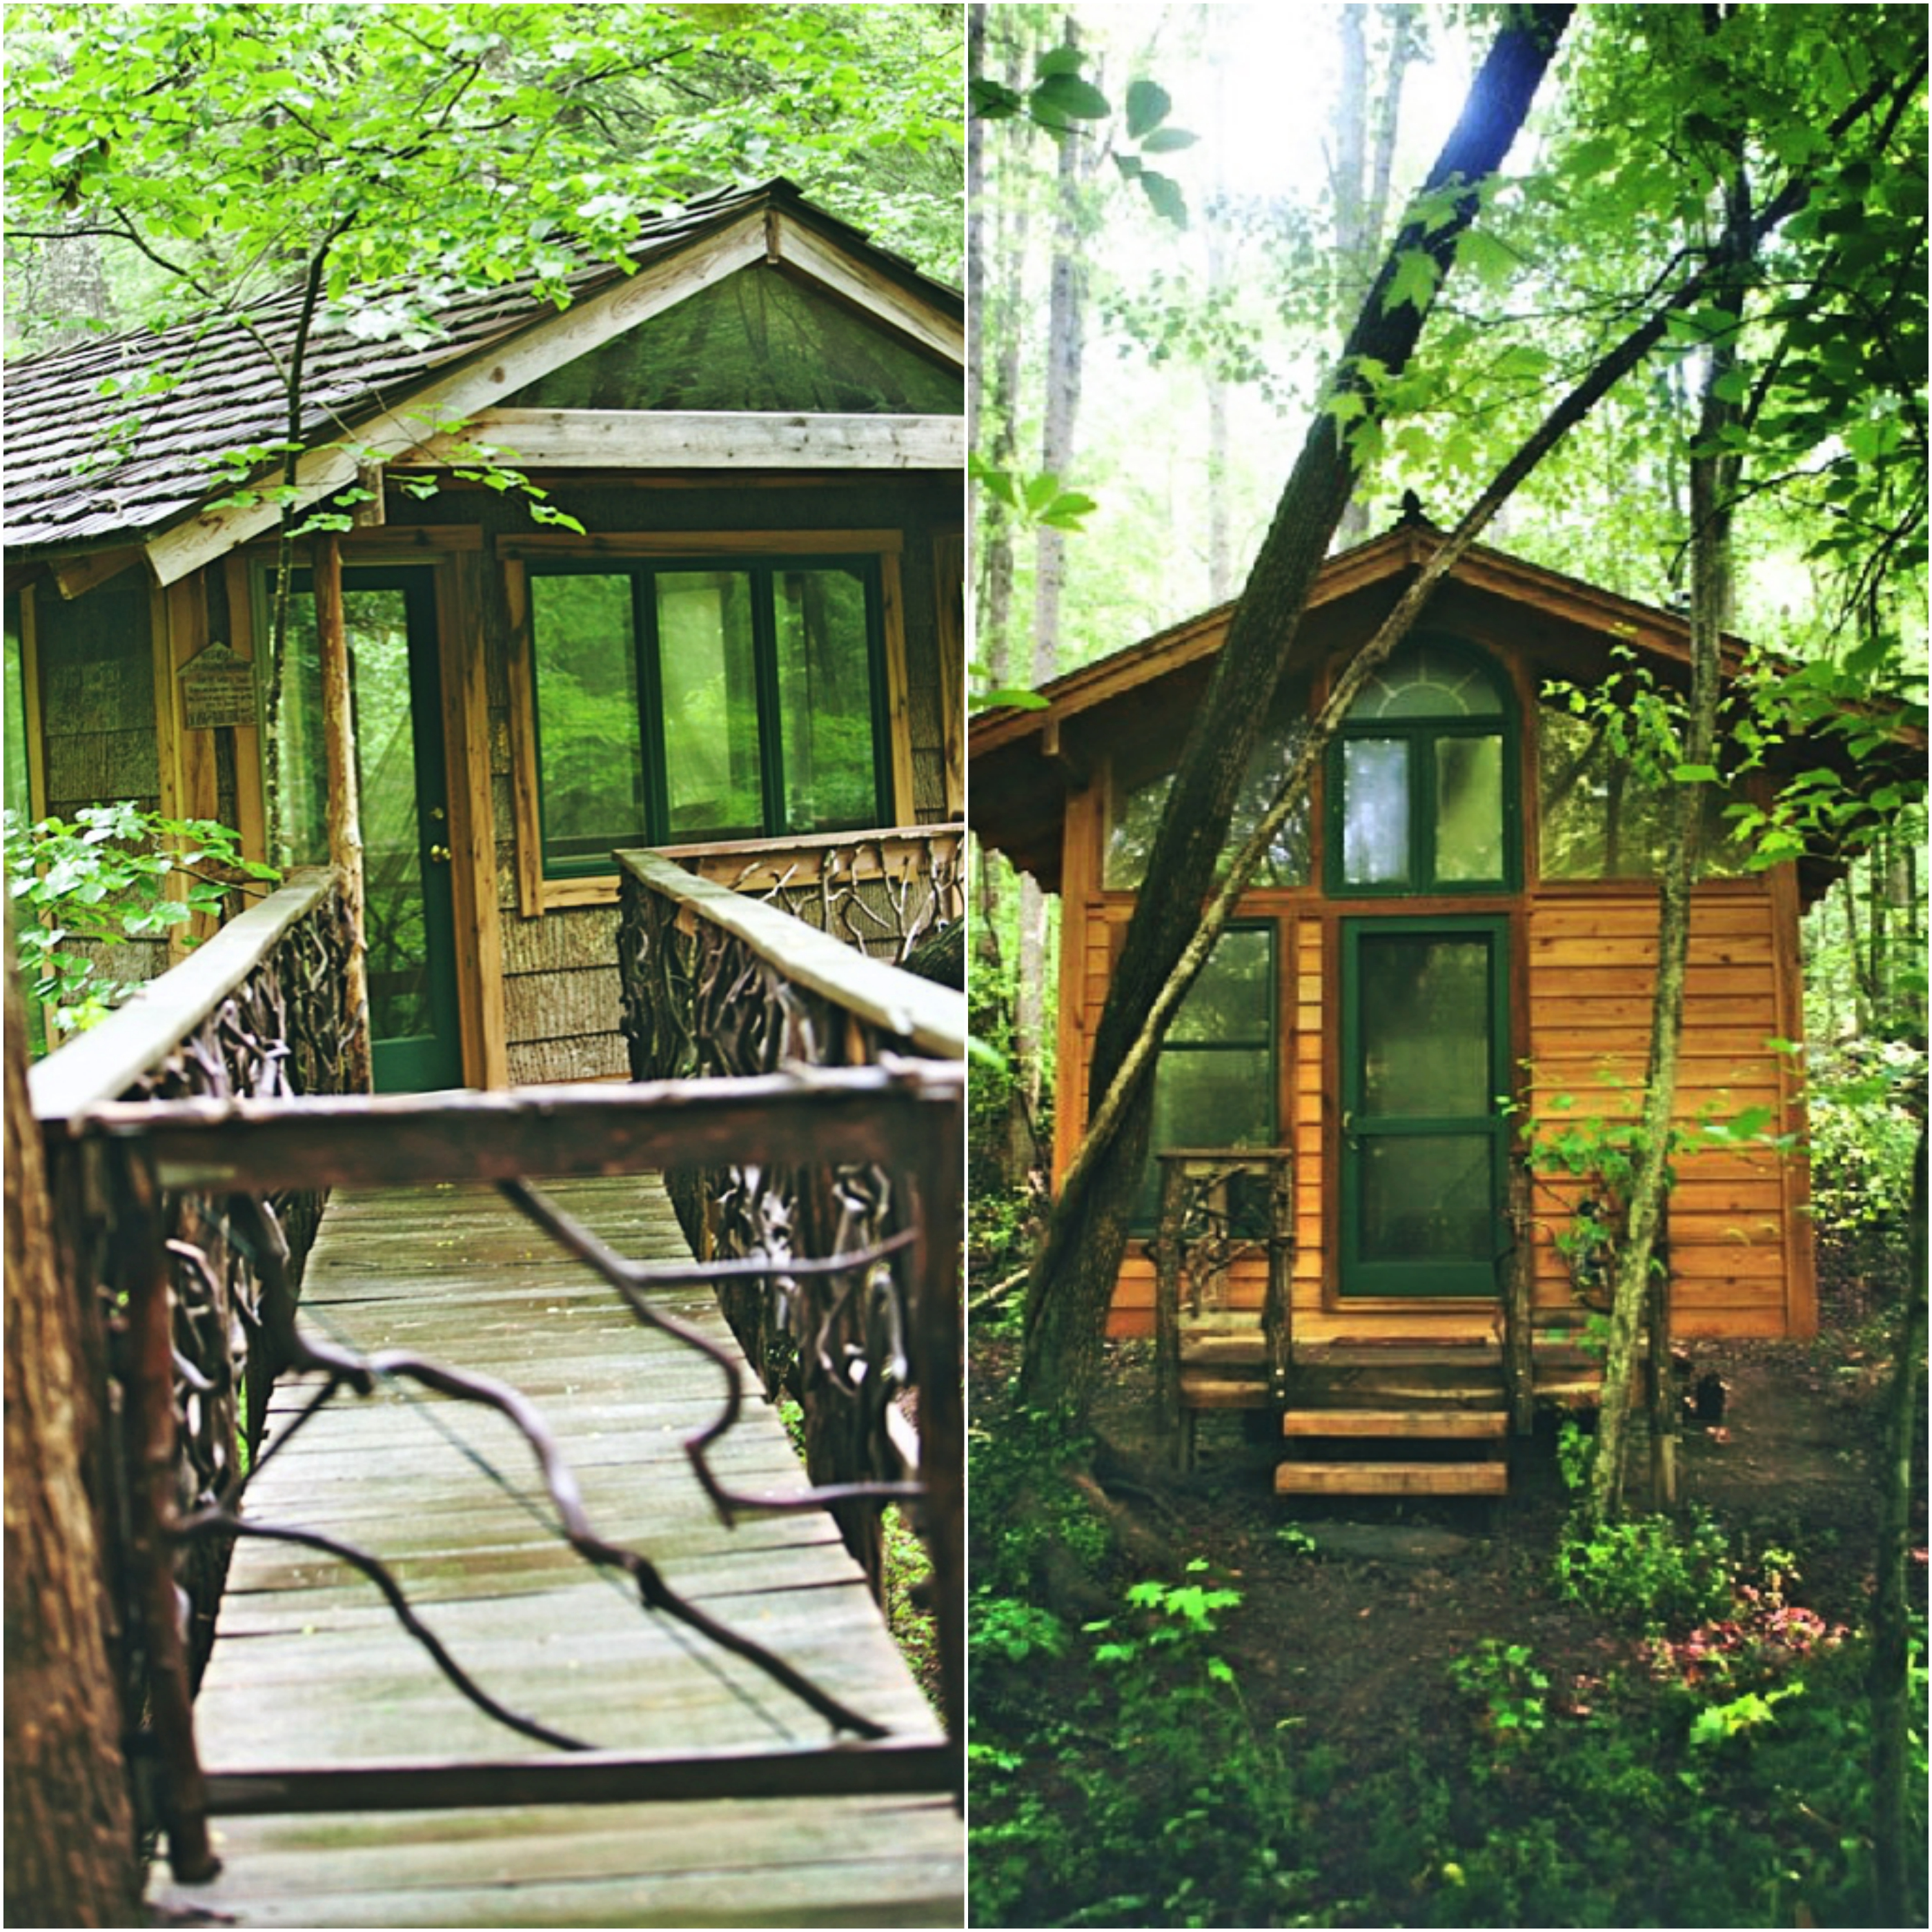 Pet friendly site with tree house in georgia for Luxury pet friendly cabins in north georgia